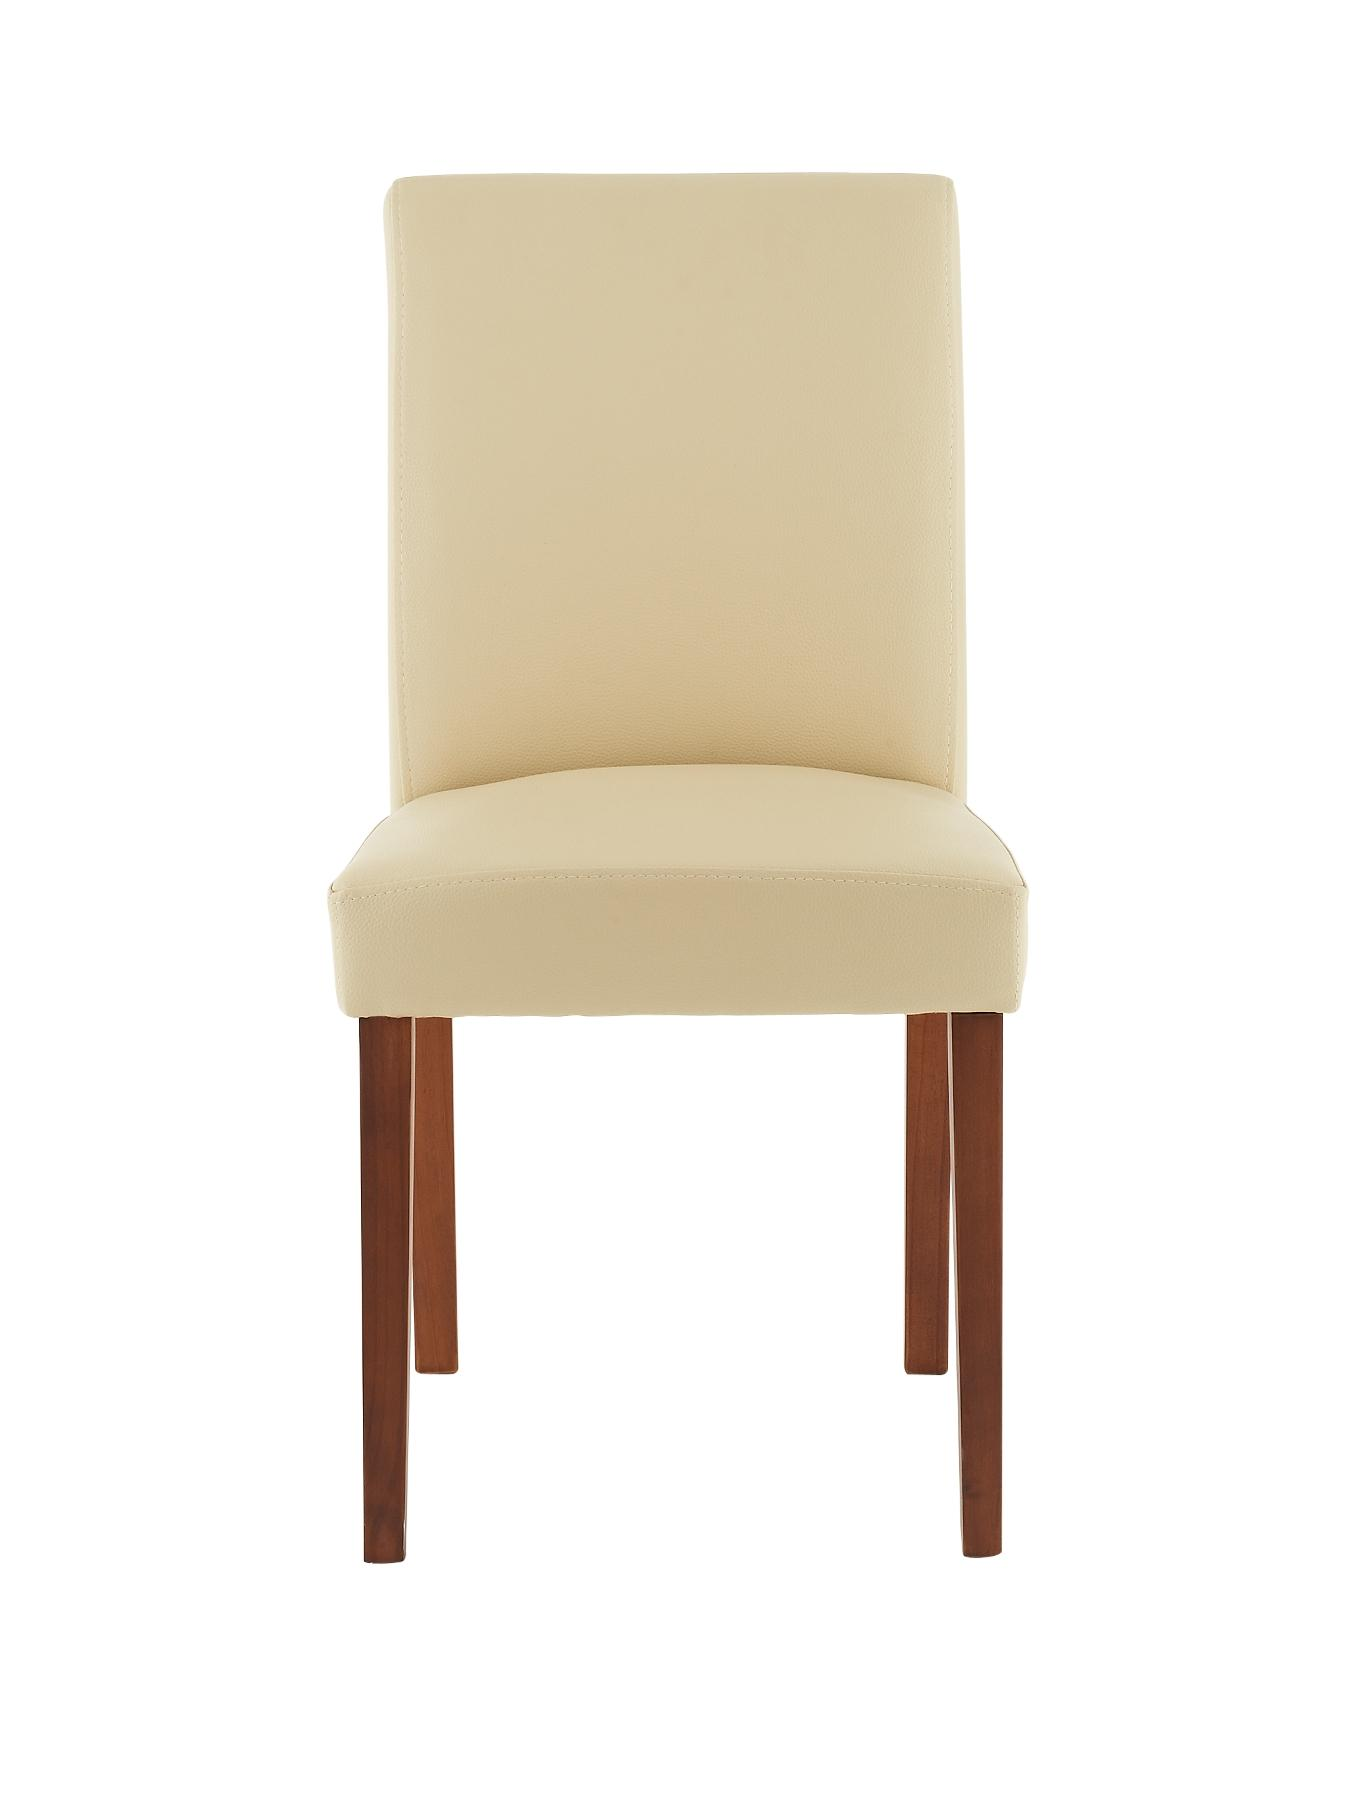 Lucca Dining Chairs (Set of 2), Brown,Cream,Black